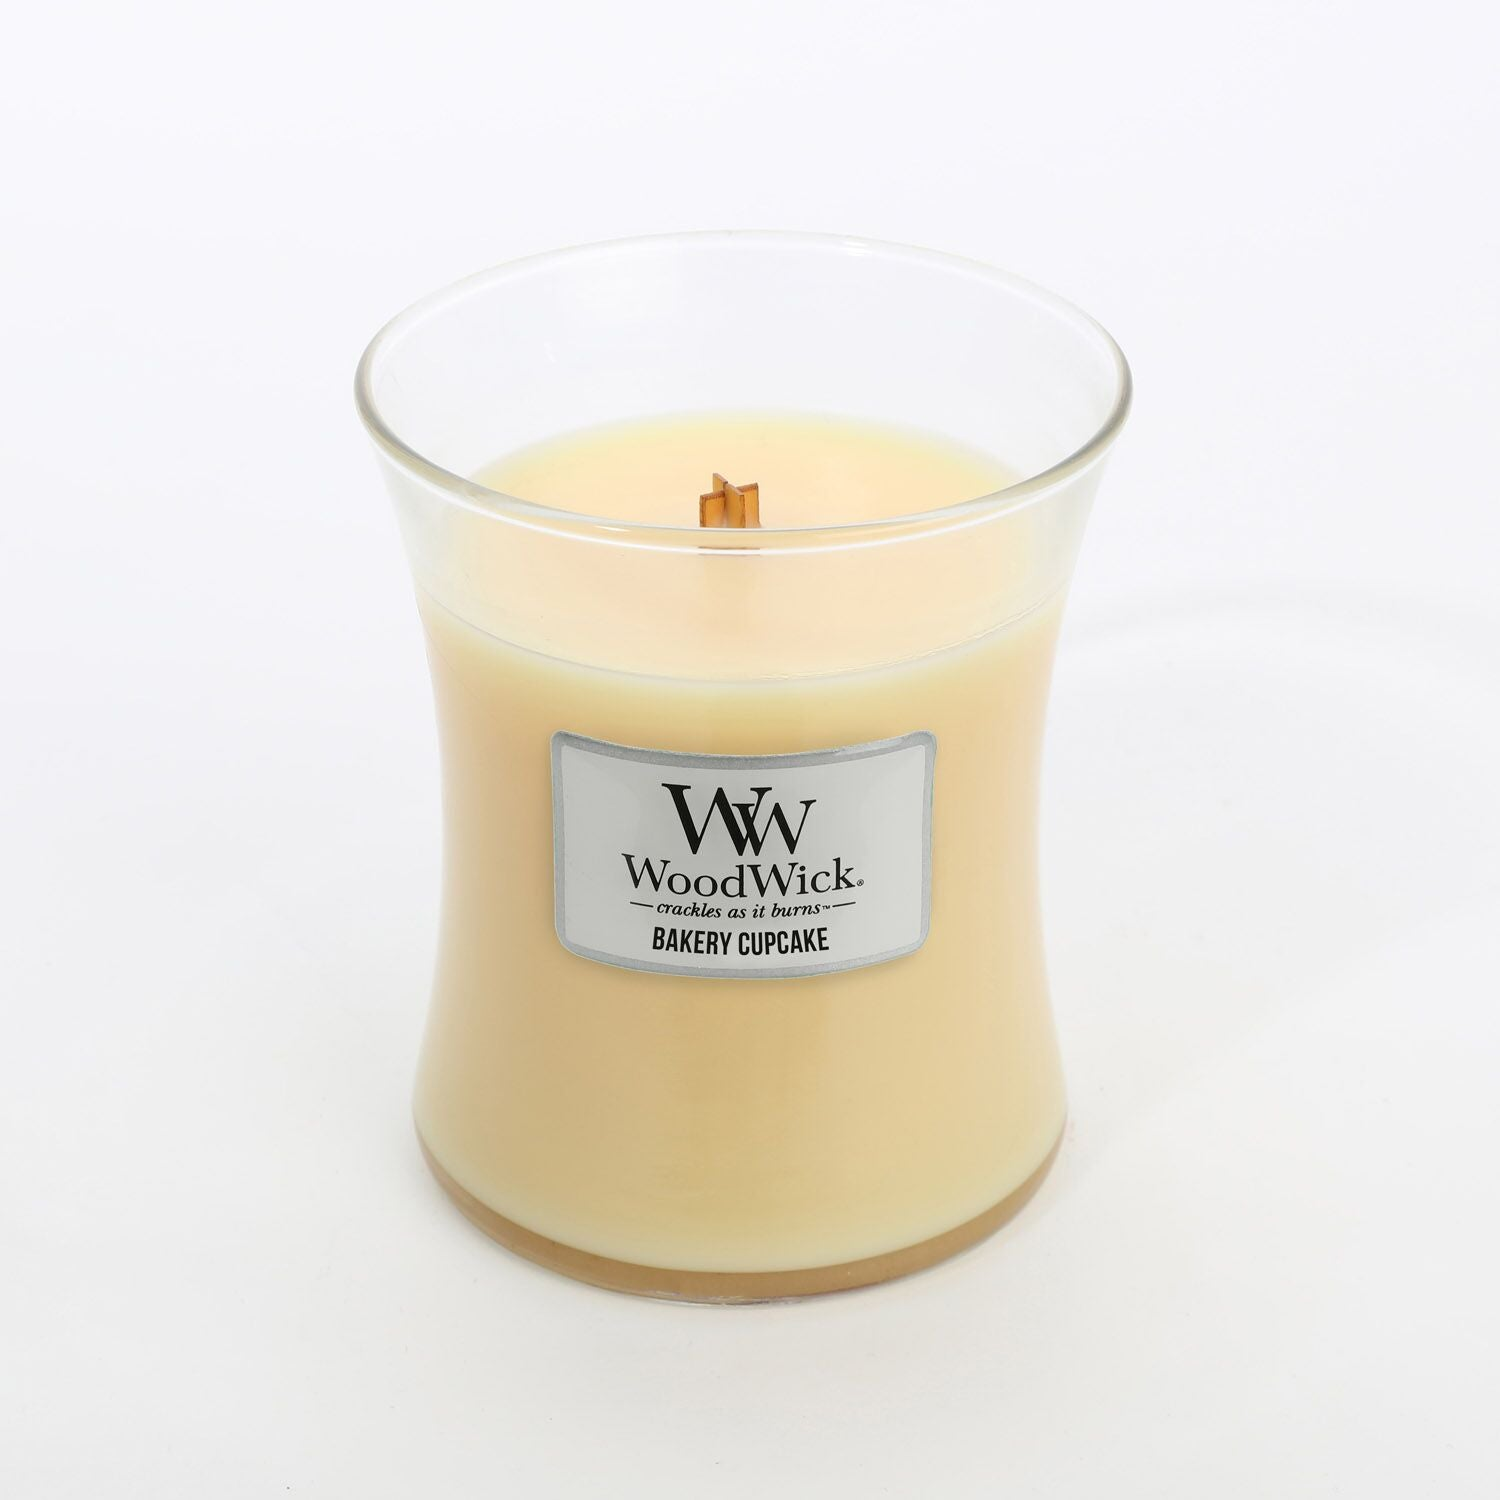 Medium Bakery Cupcake Scented WoodWick Soy Candle